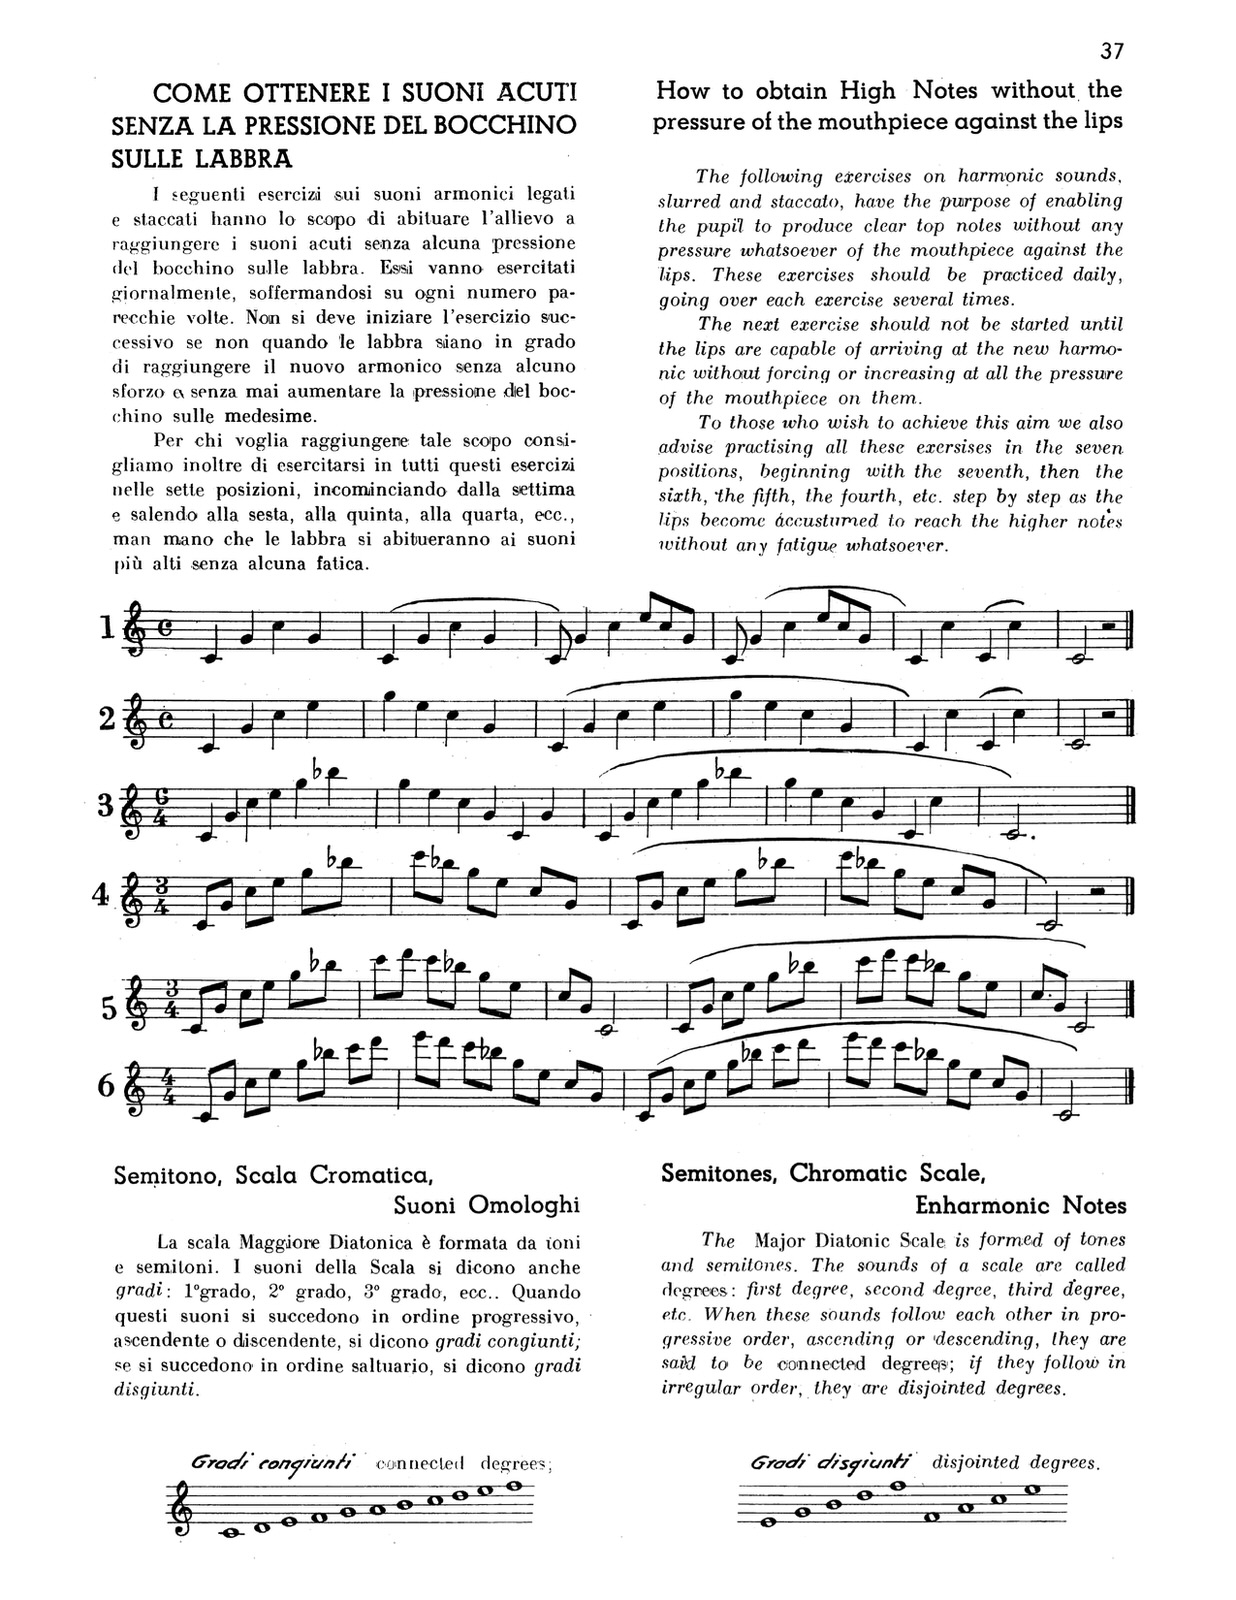 Caffarelli, The Art of Playing the Trumpet 5